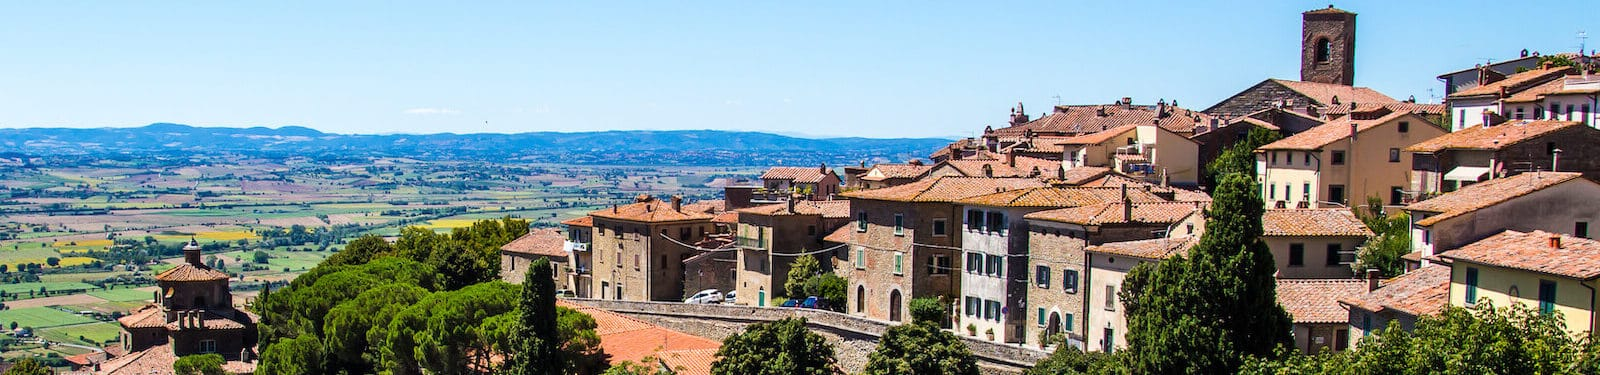 Things to do in Tuscany - one week Tuscany travel itinerary